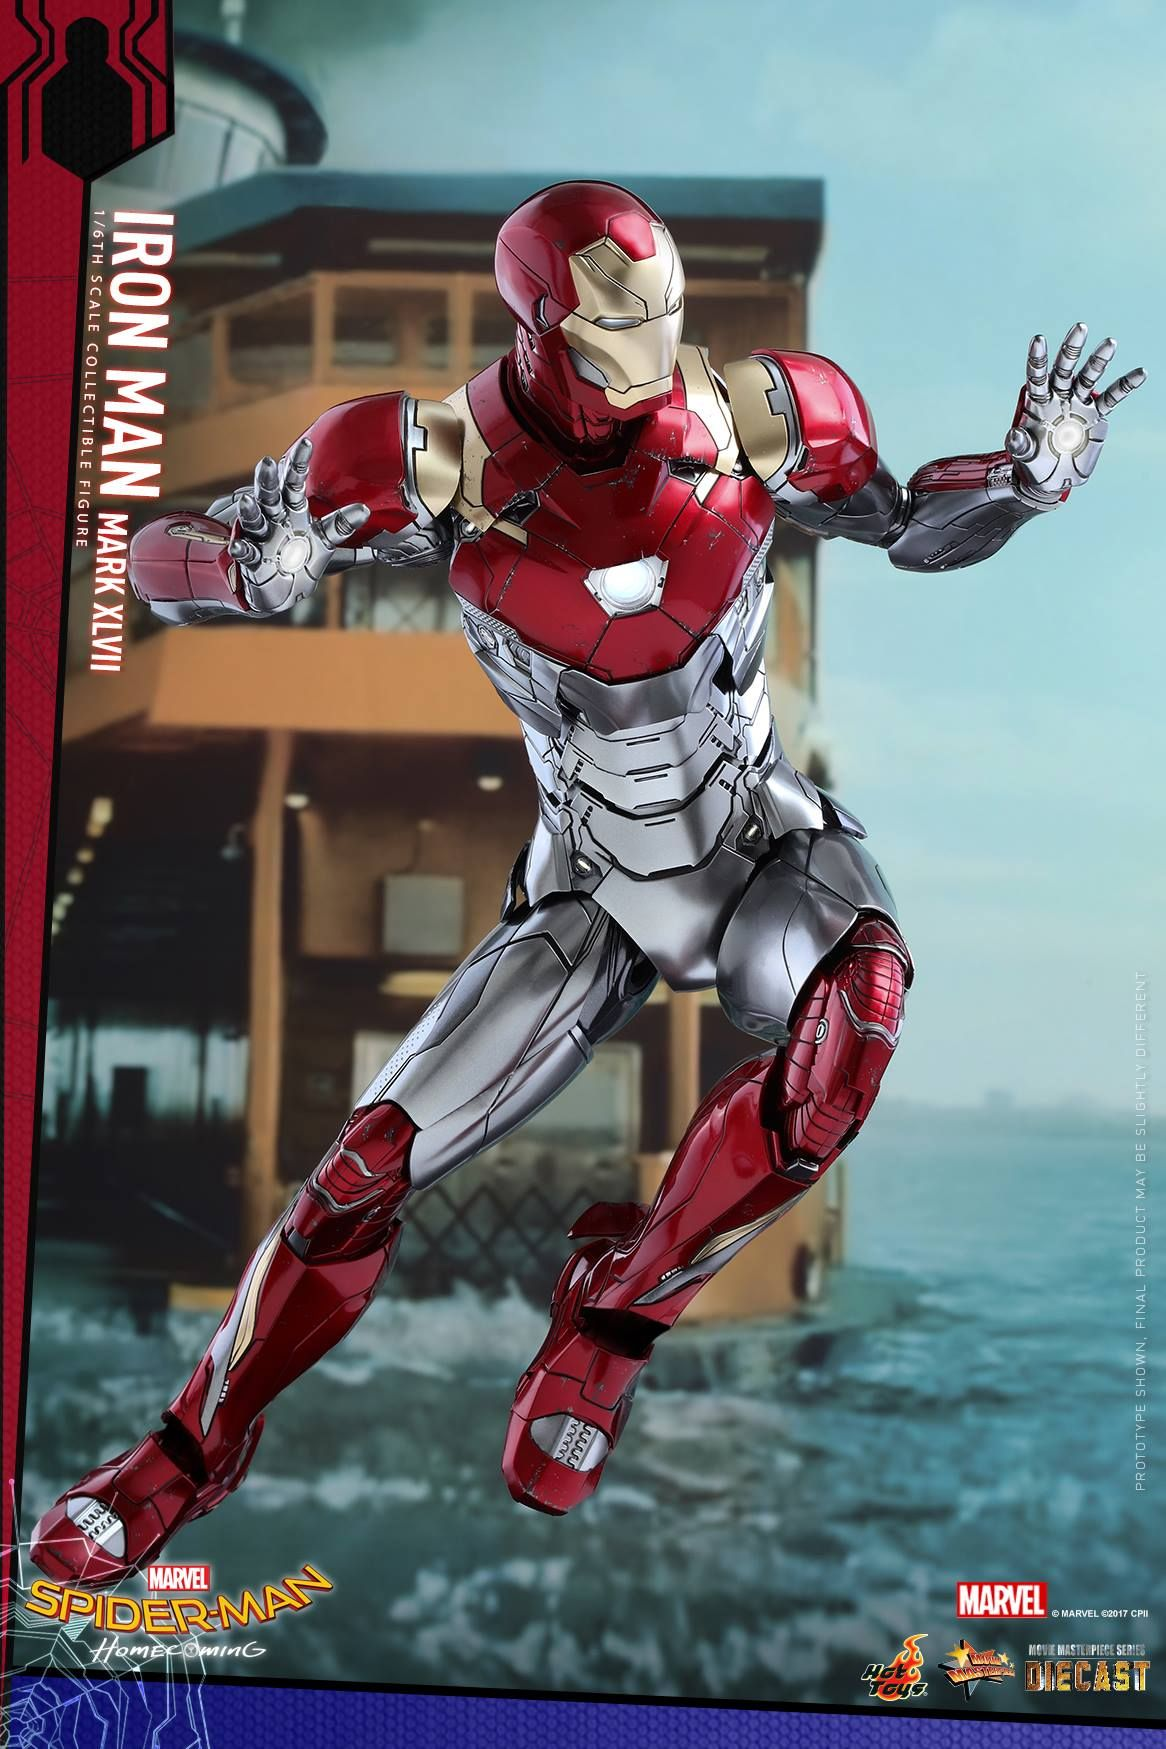 Hot Toys Gives Us Our Best Look Yet At Iron Man S New Armor In